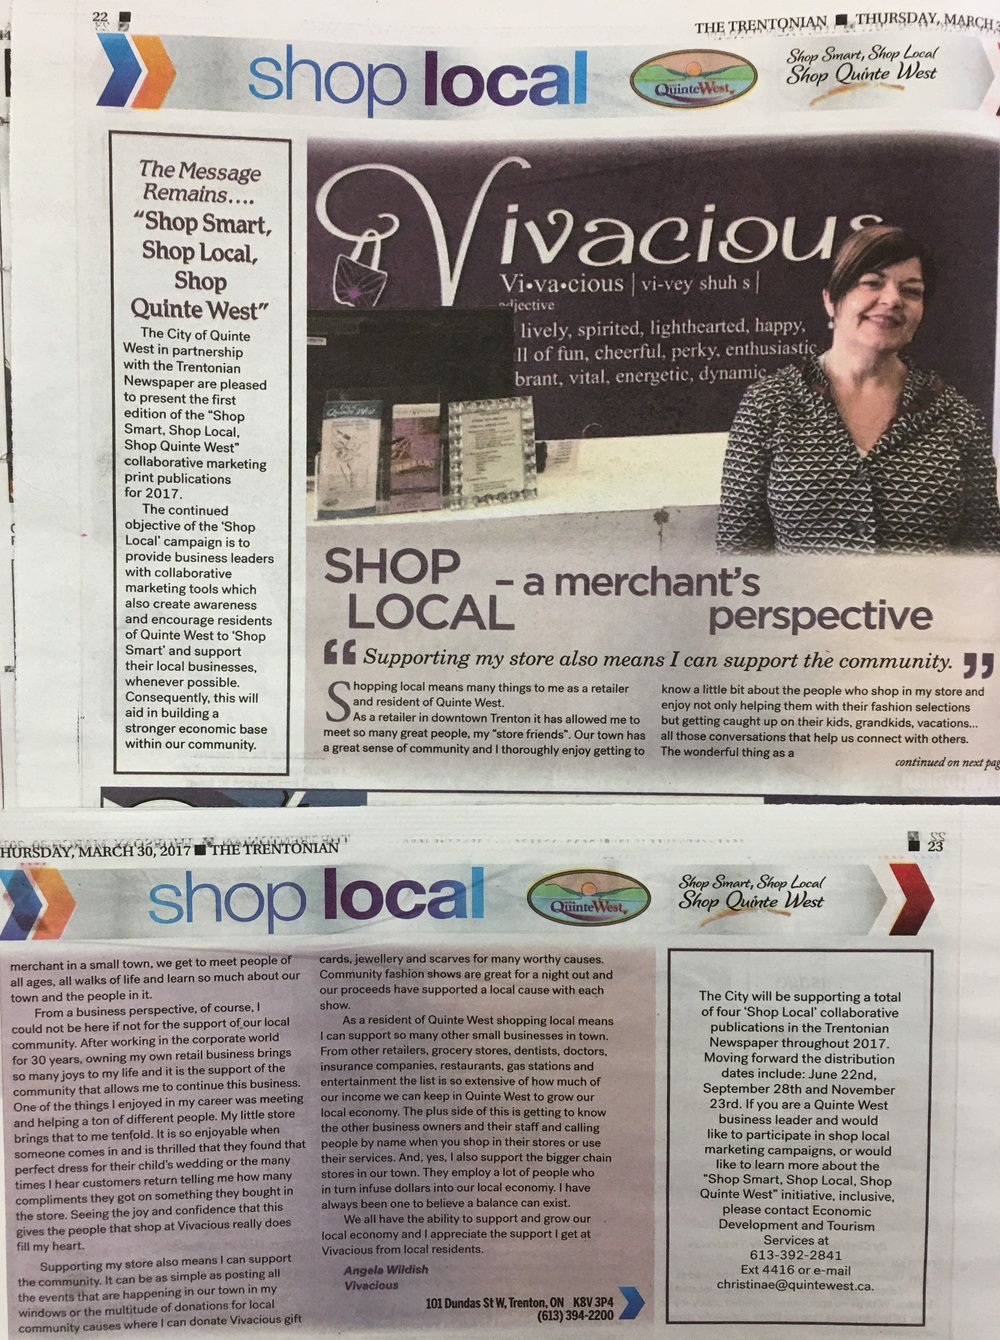 shop local article.jpg